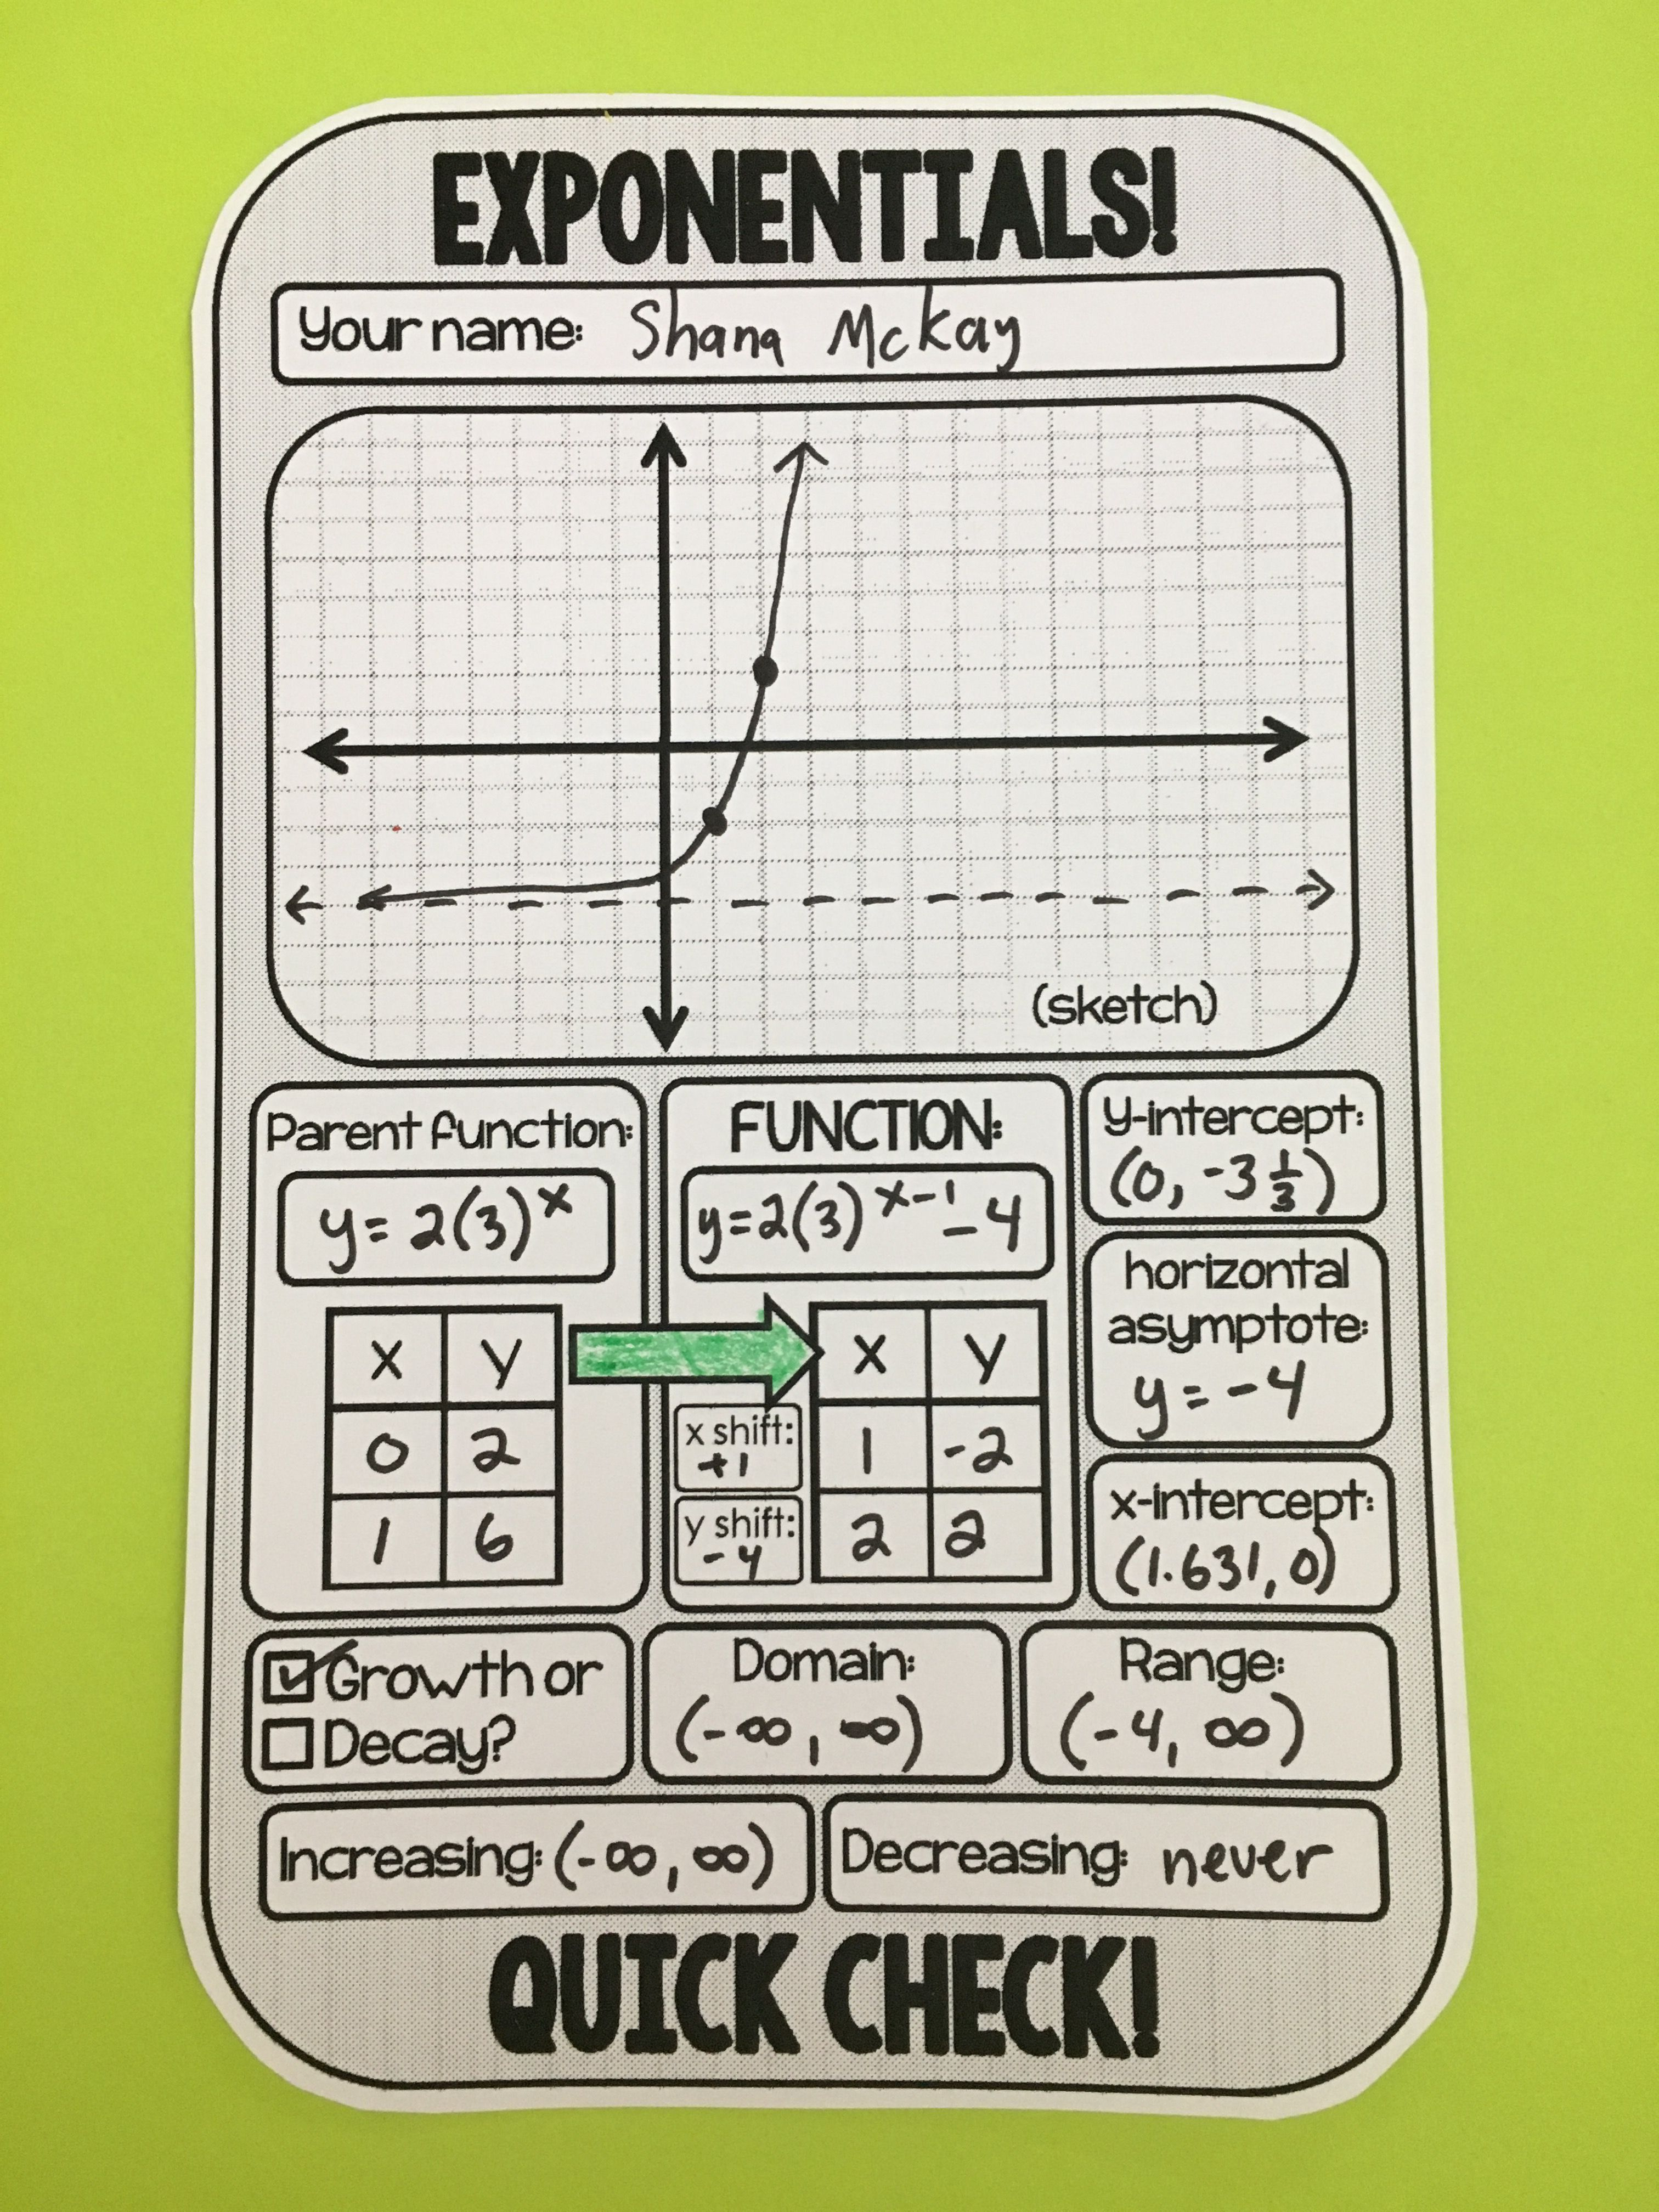 Exponential Functions Quick Check And Warm Up Template Exponential Functions Functions Algebra Math Template